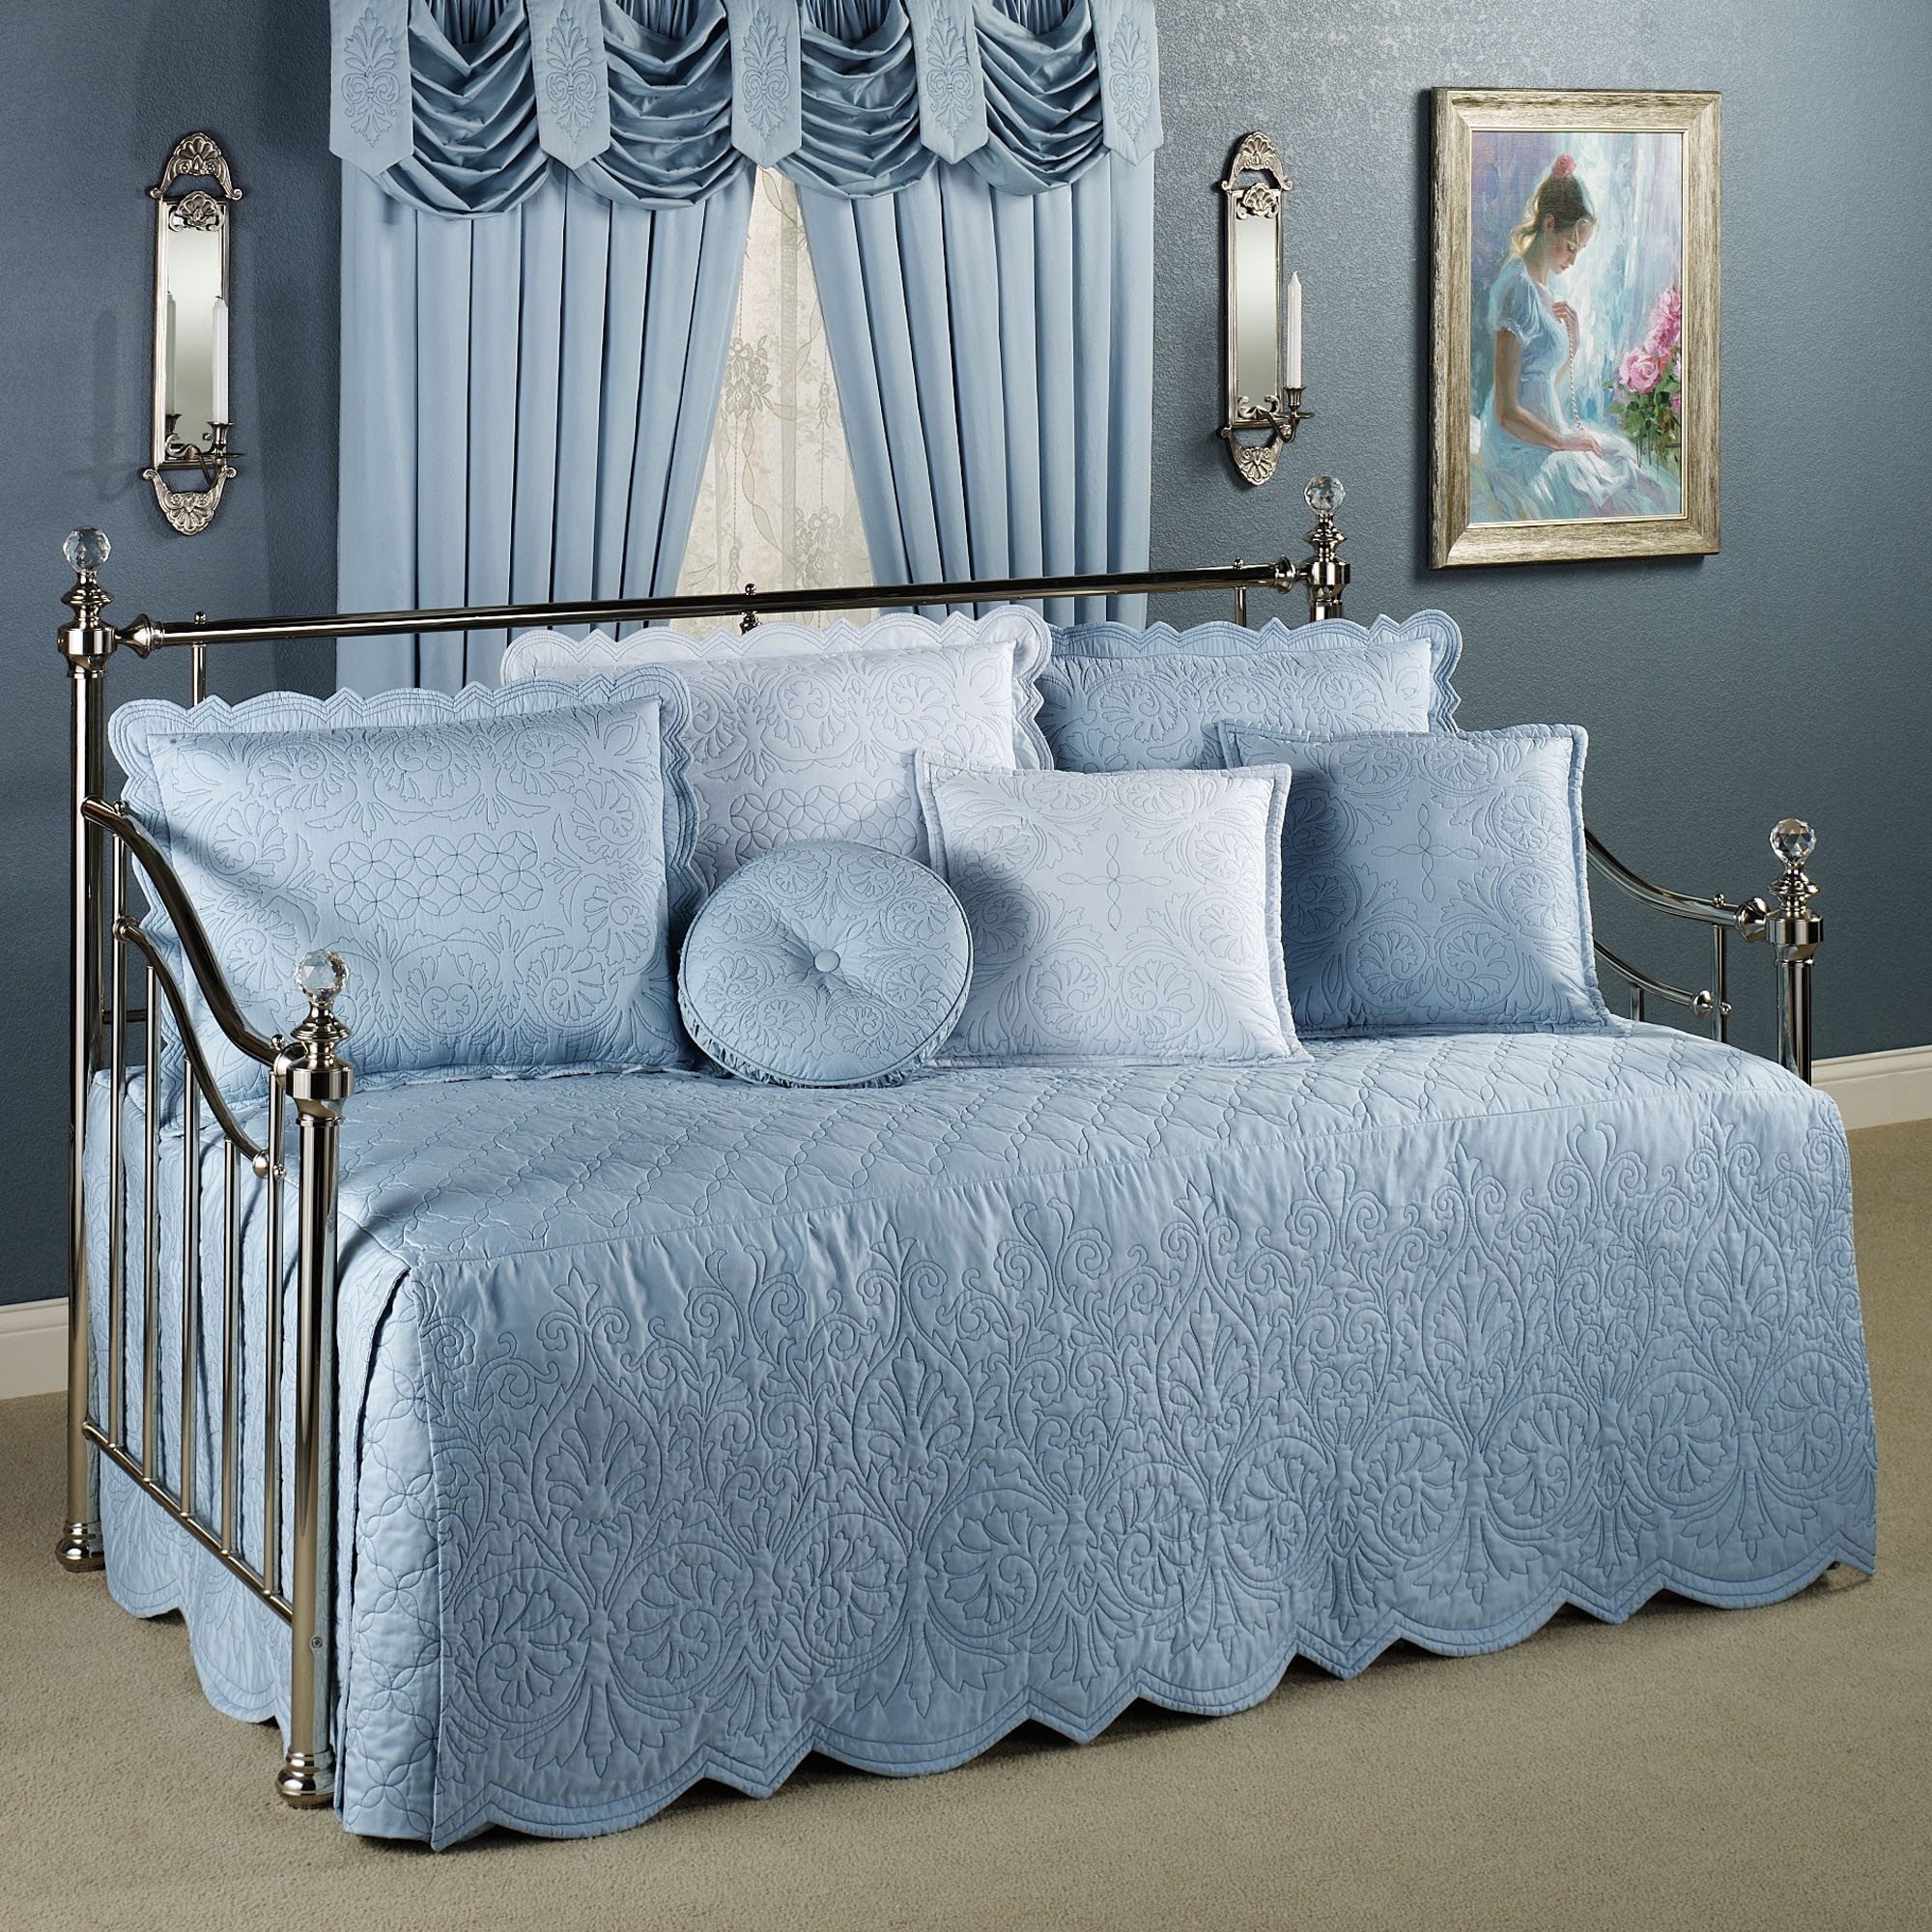 daybed bedding sets blue photo - 6